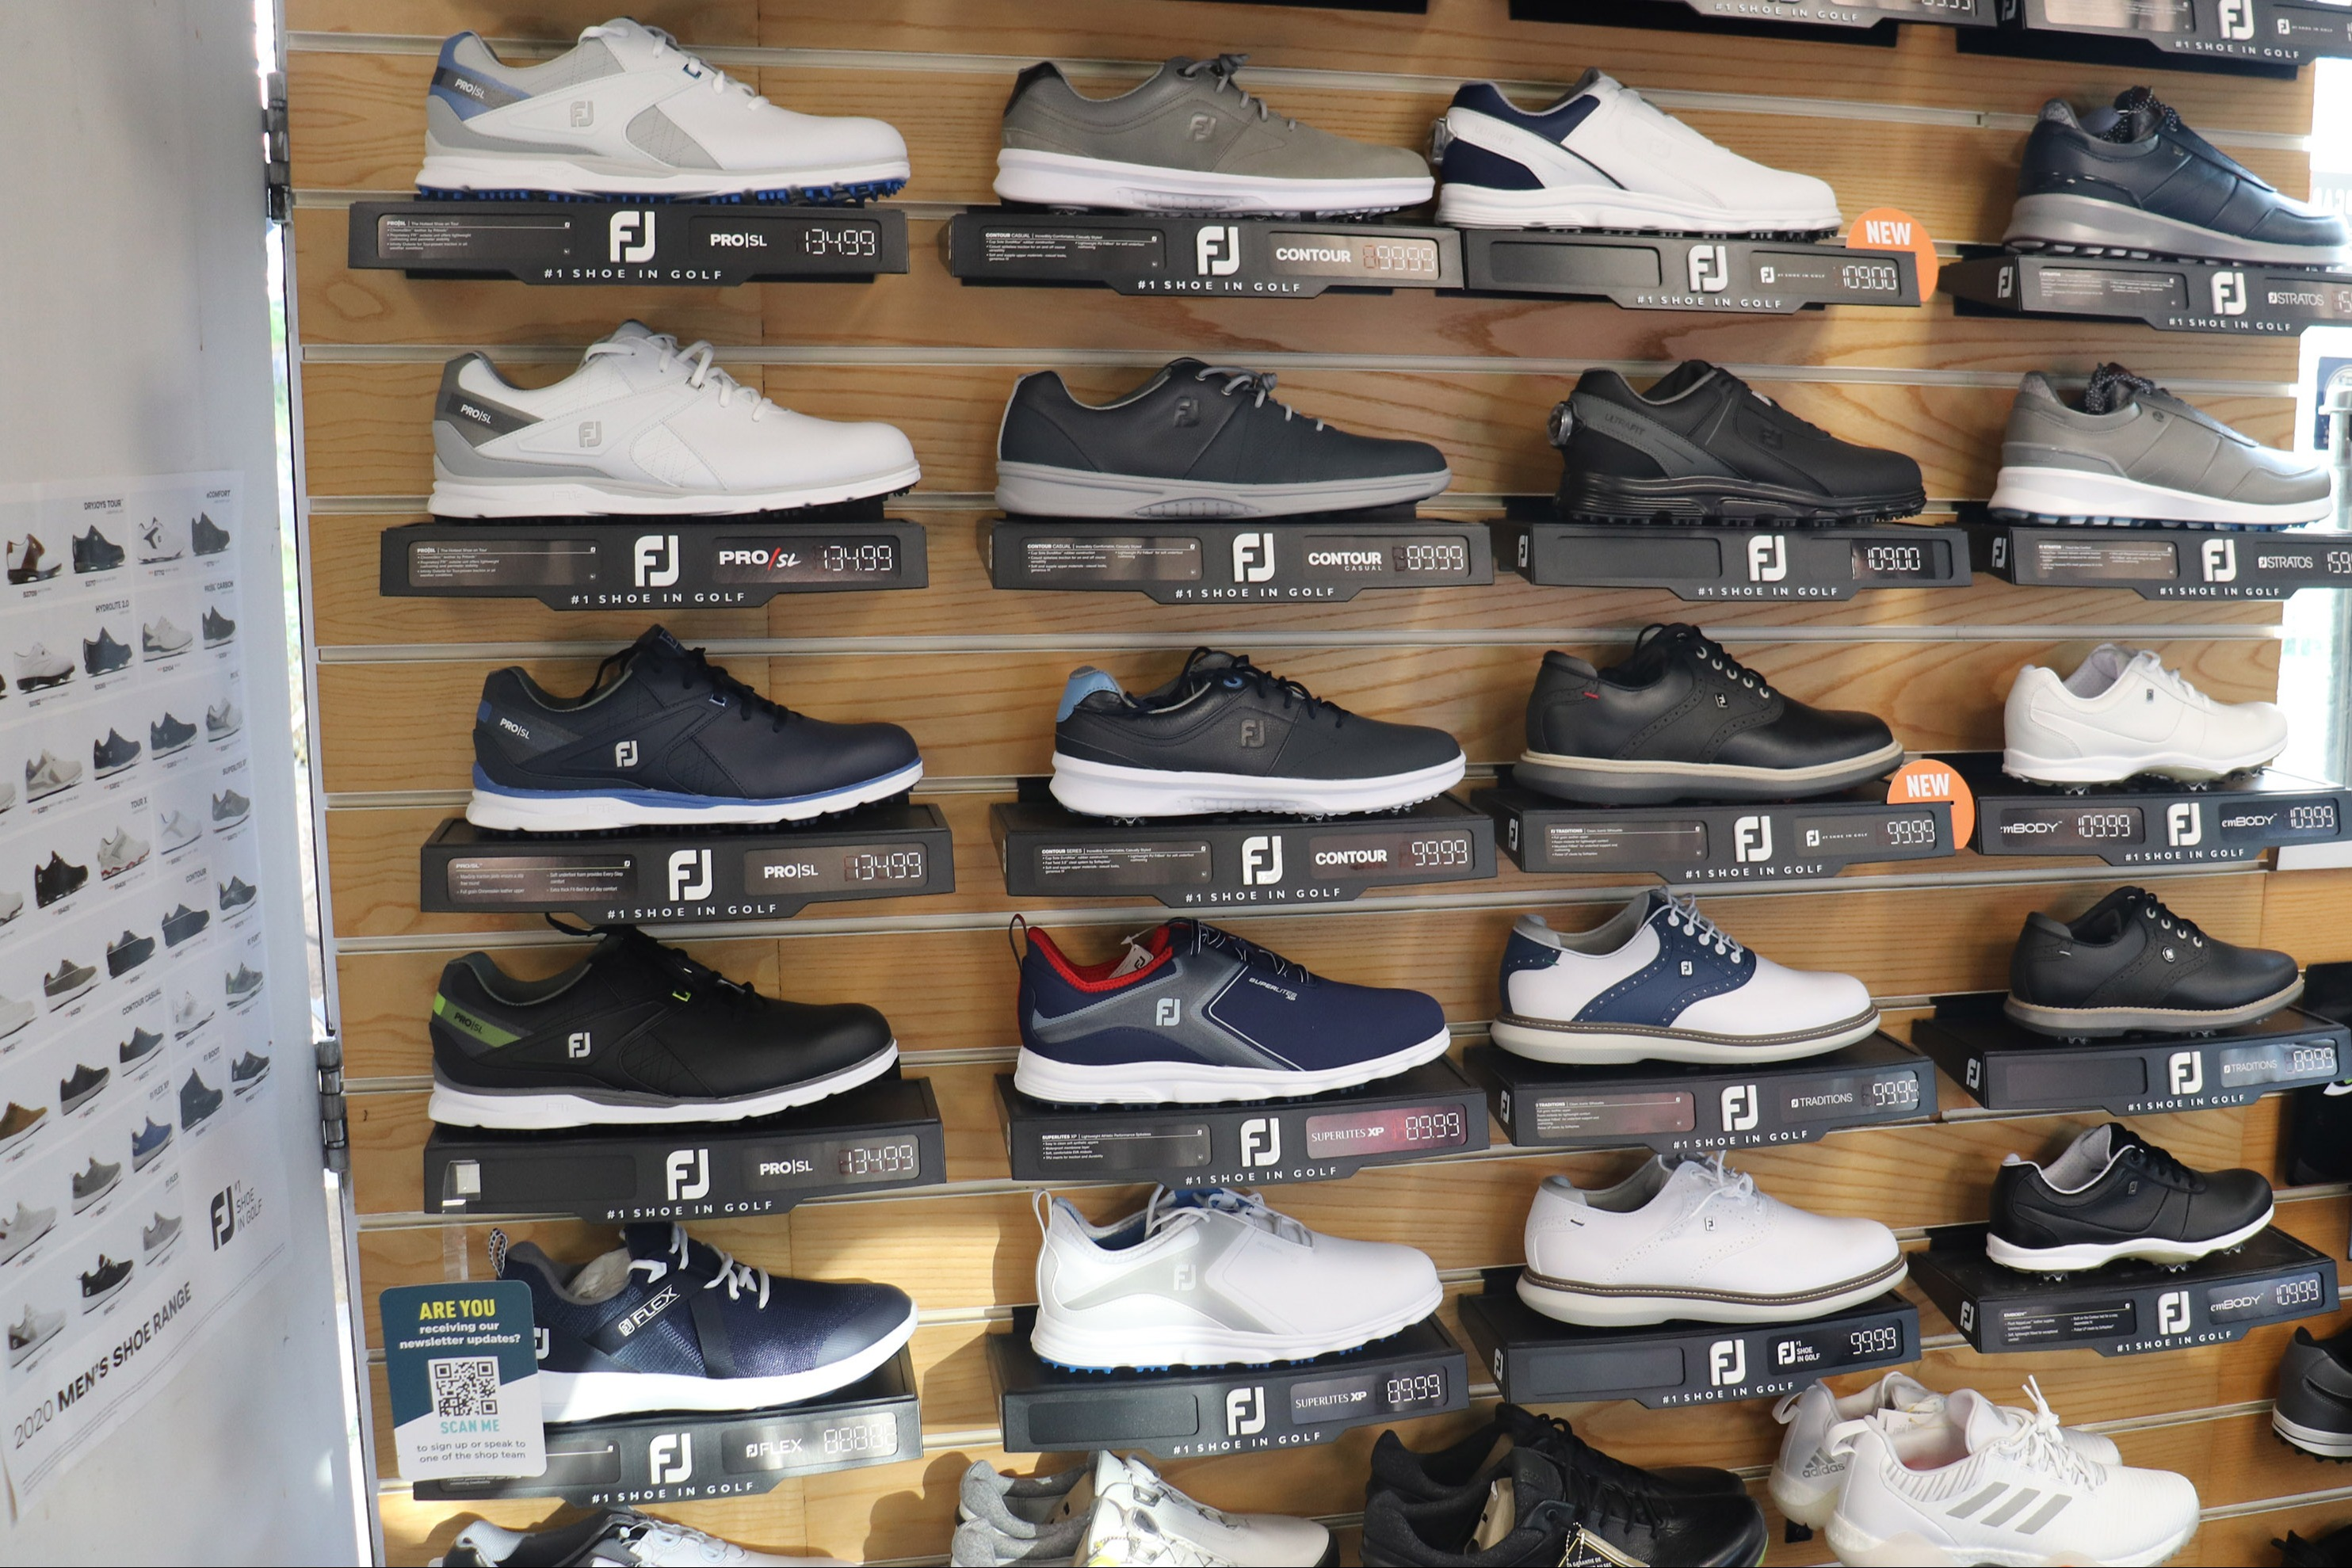 Golf shoes from Footjoy, Ecco, Adidas and Stuburt